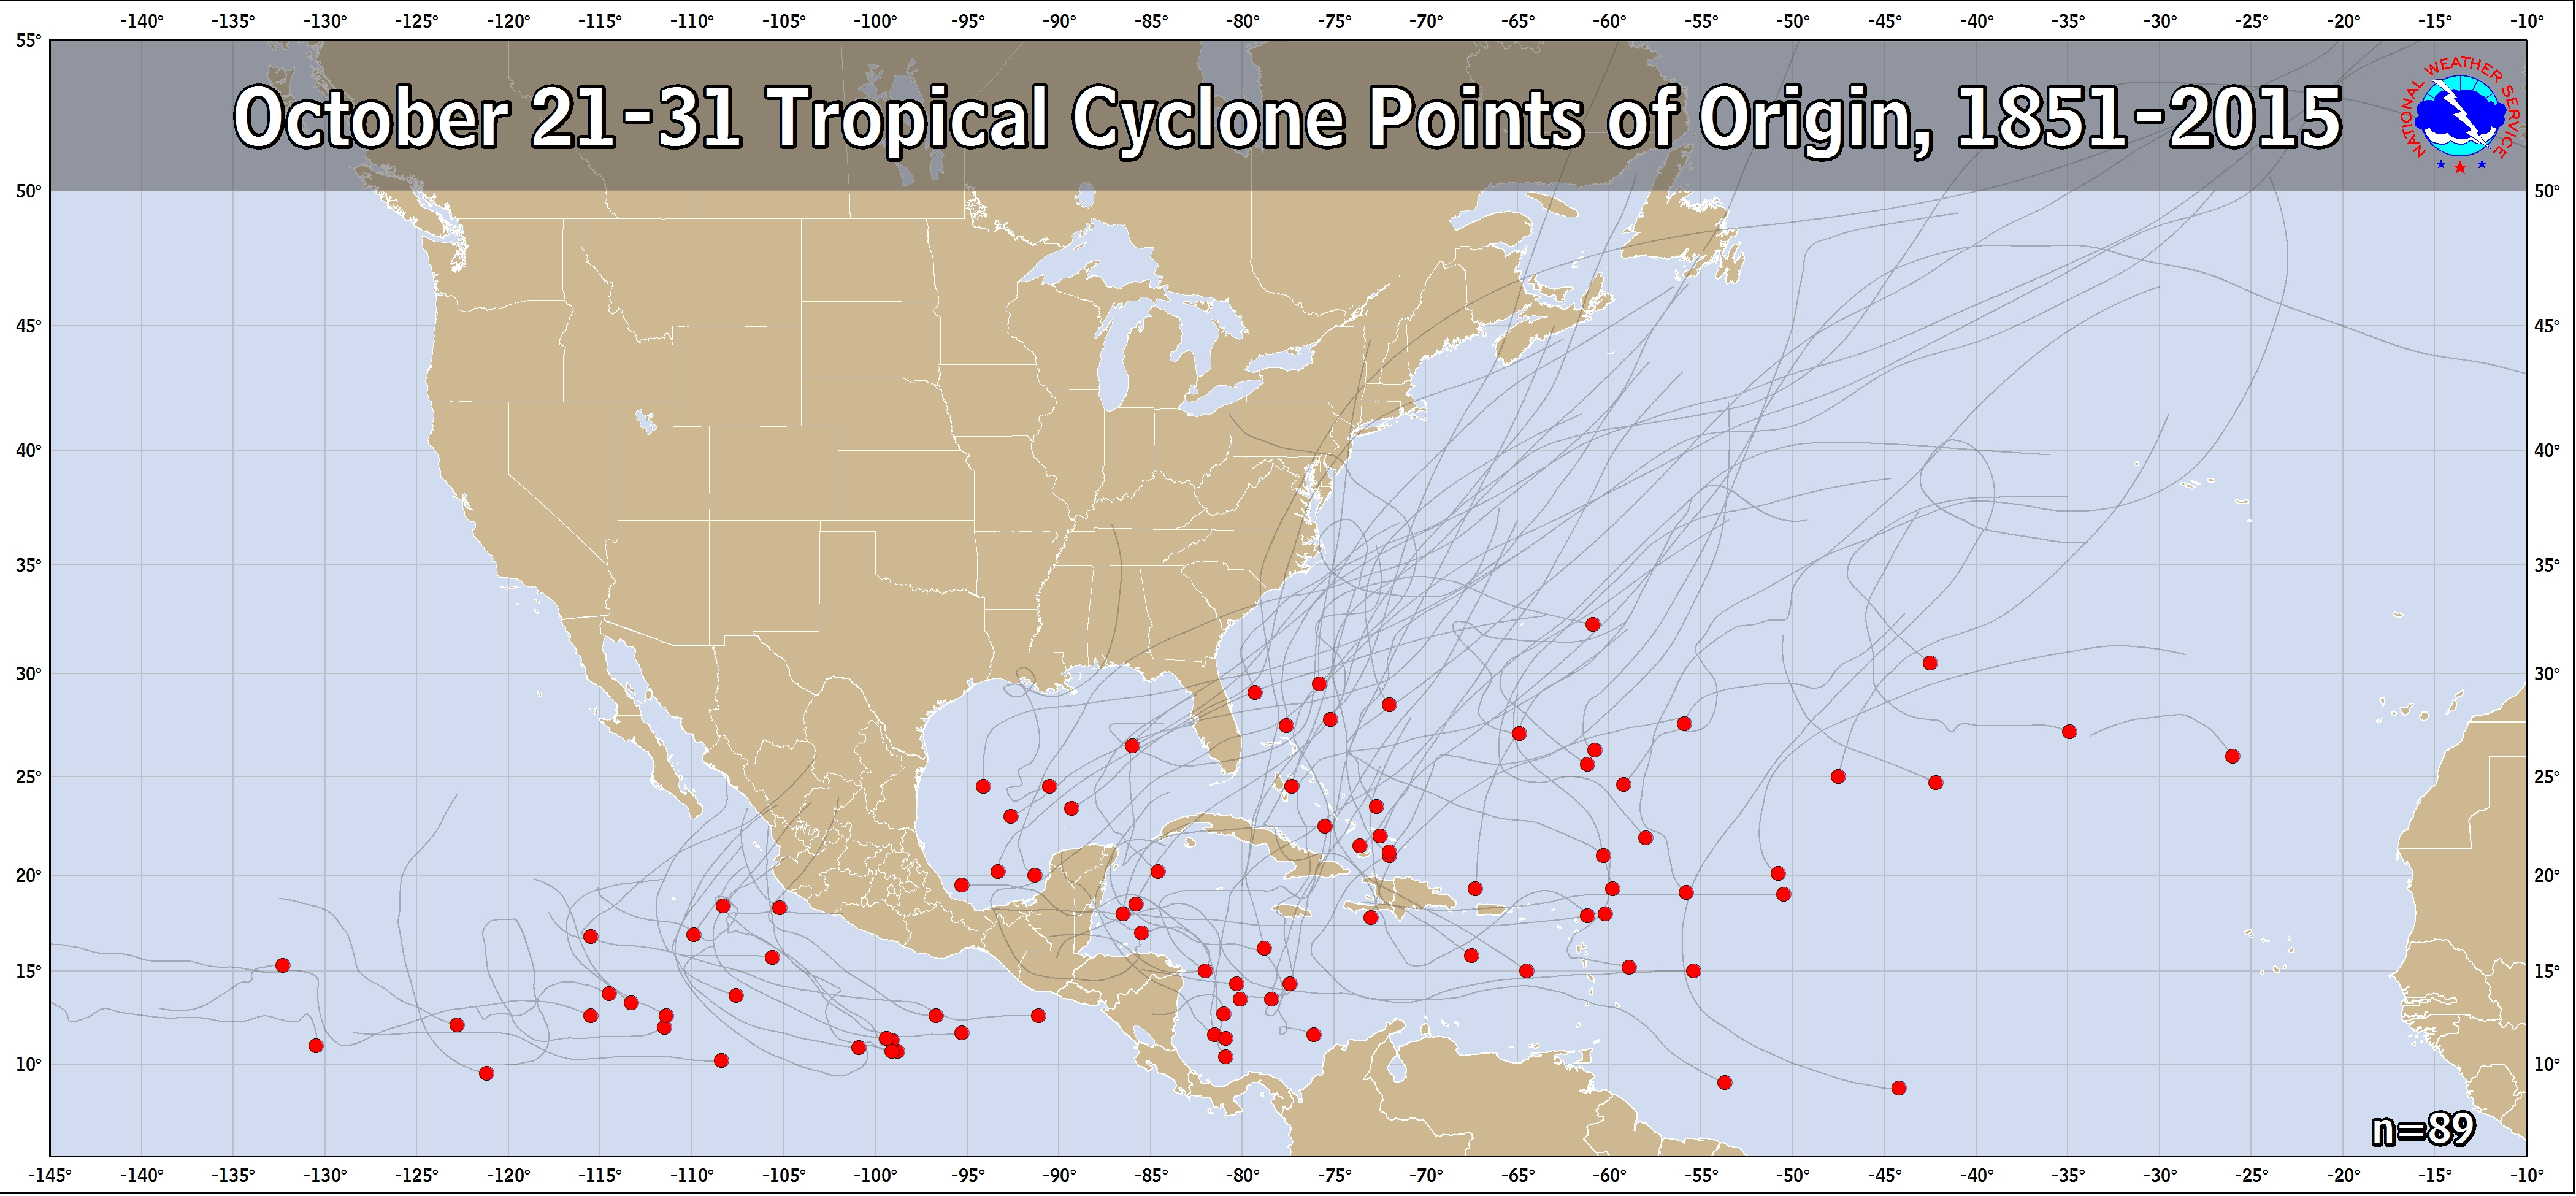 Tropical cyclone points of origin